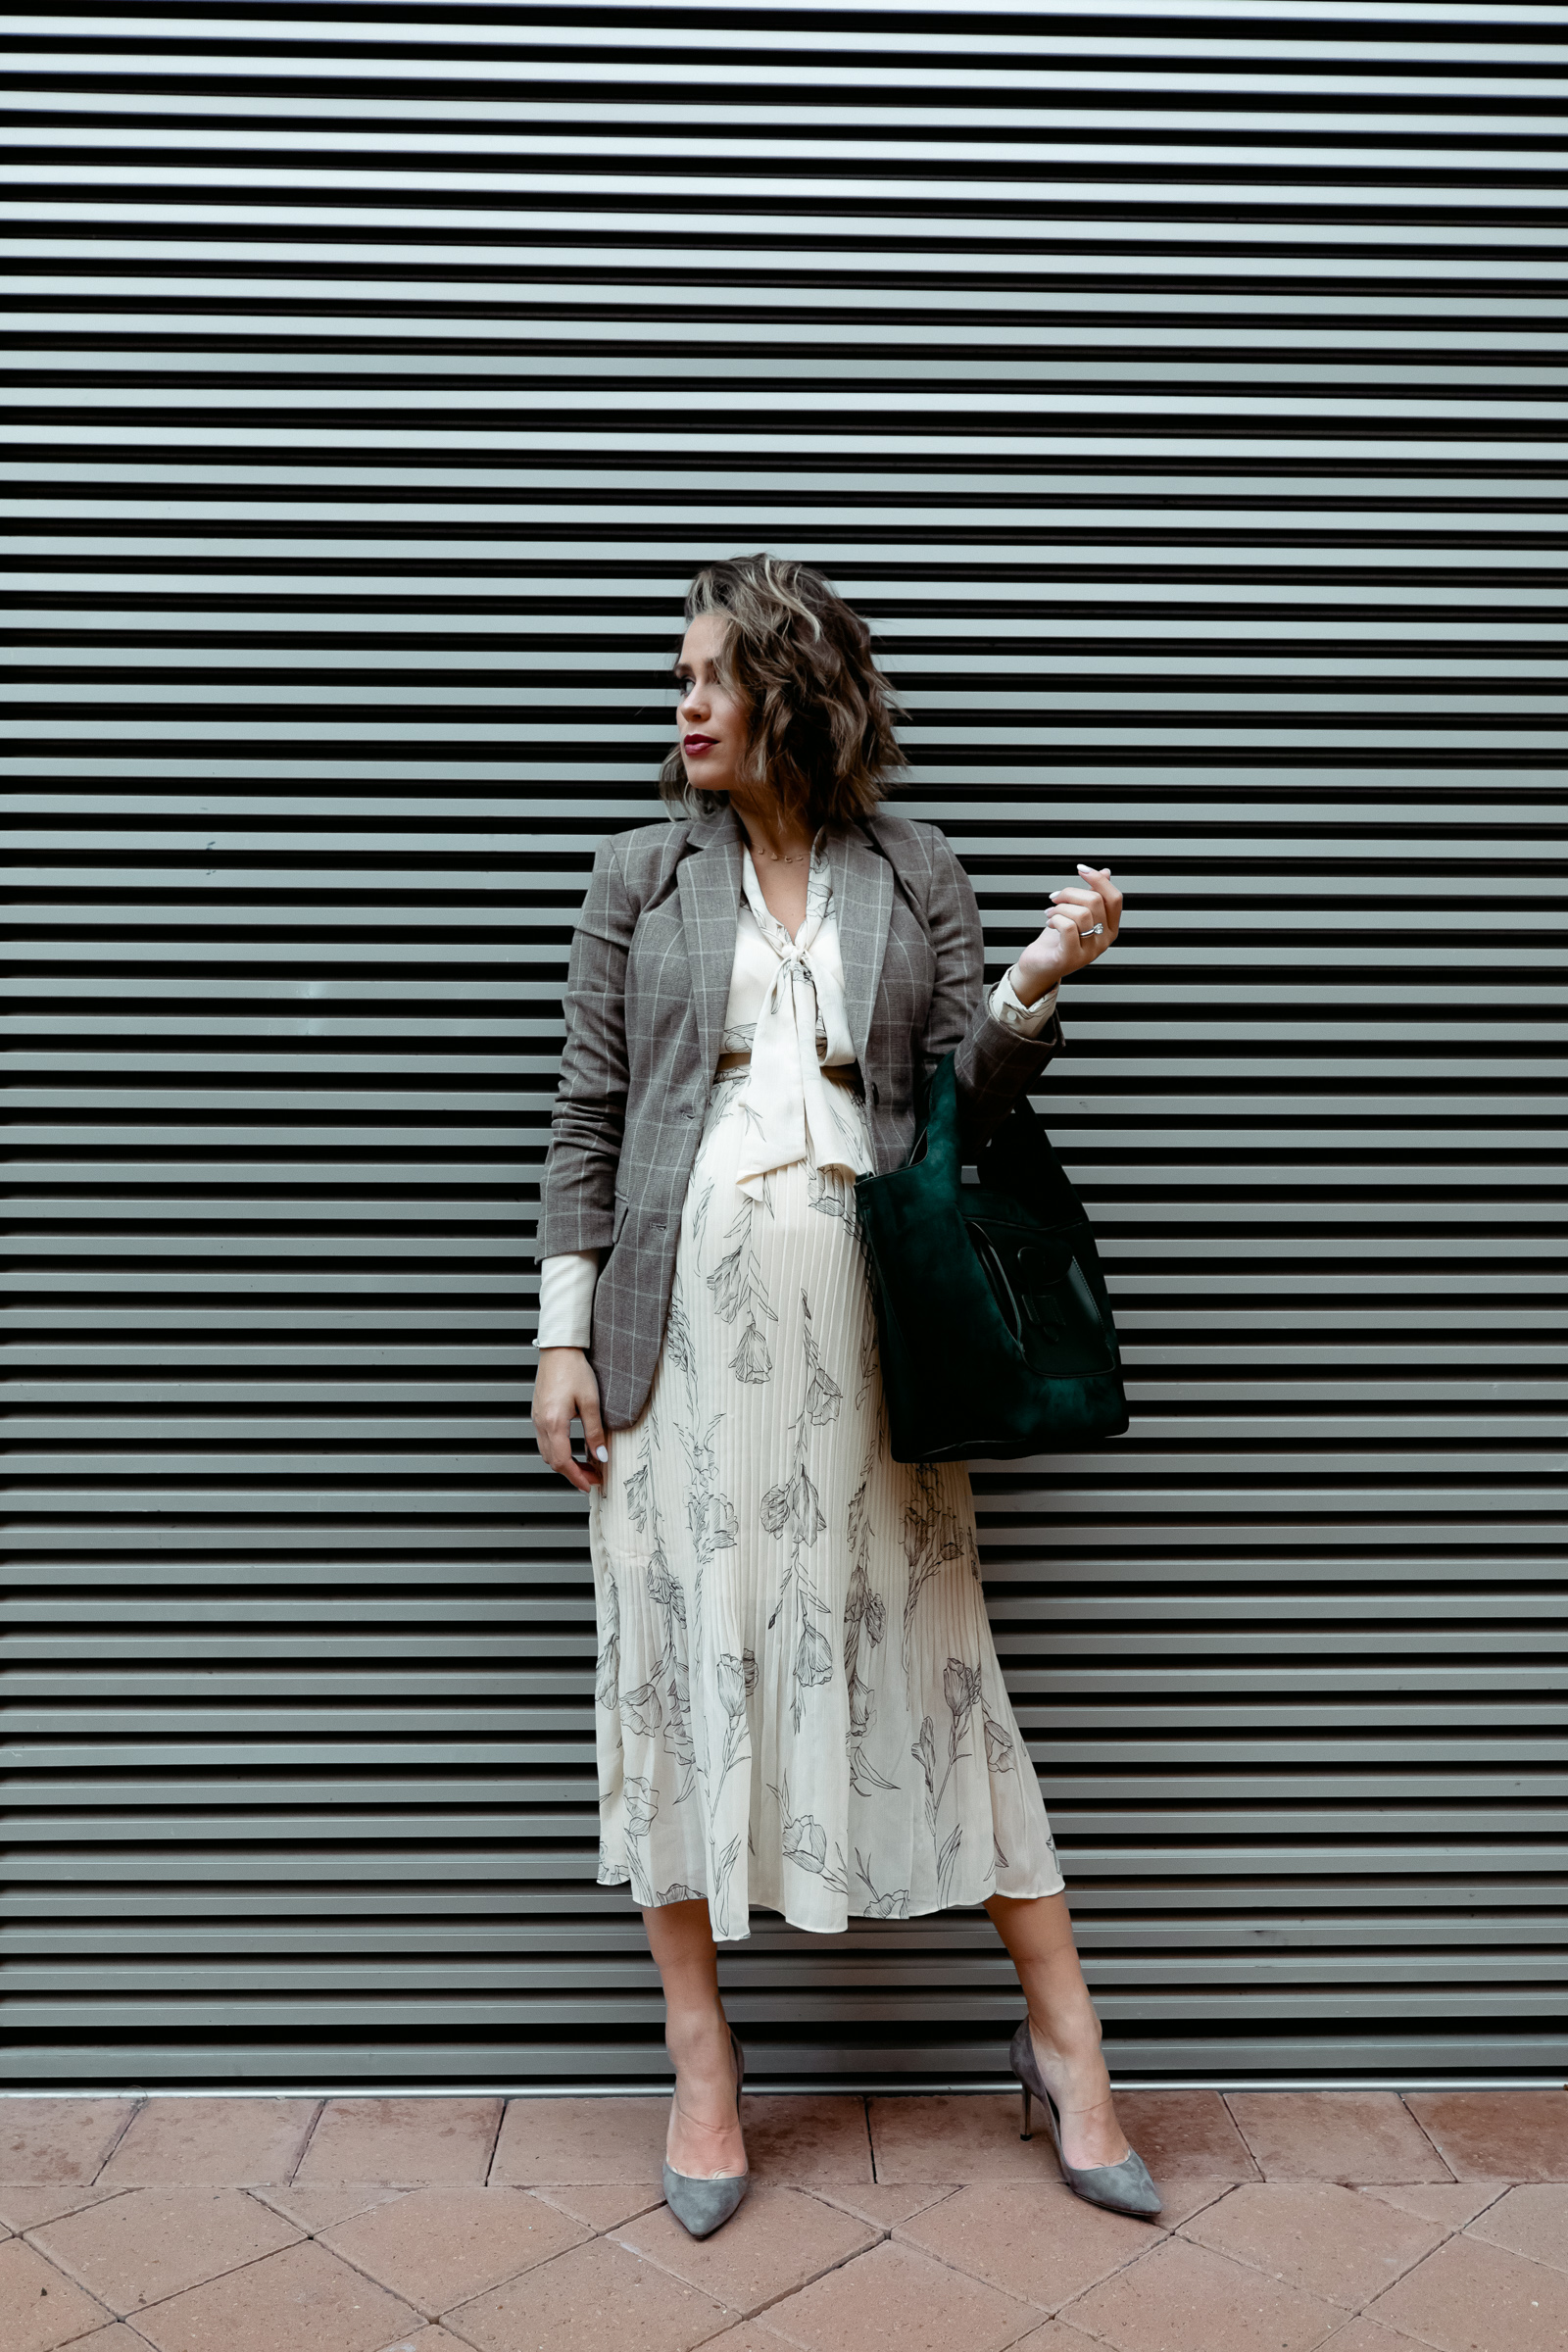 Elly Brown wears a Target pleated fall dress that's under $35 with grey suede heels and a blazer